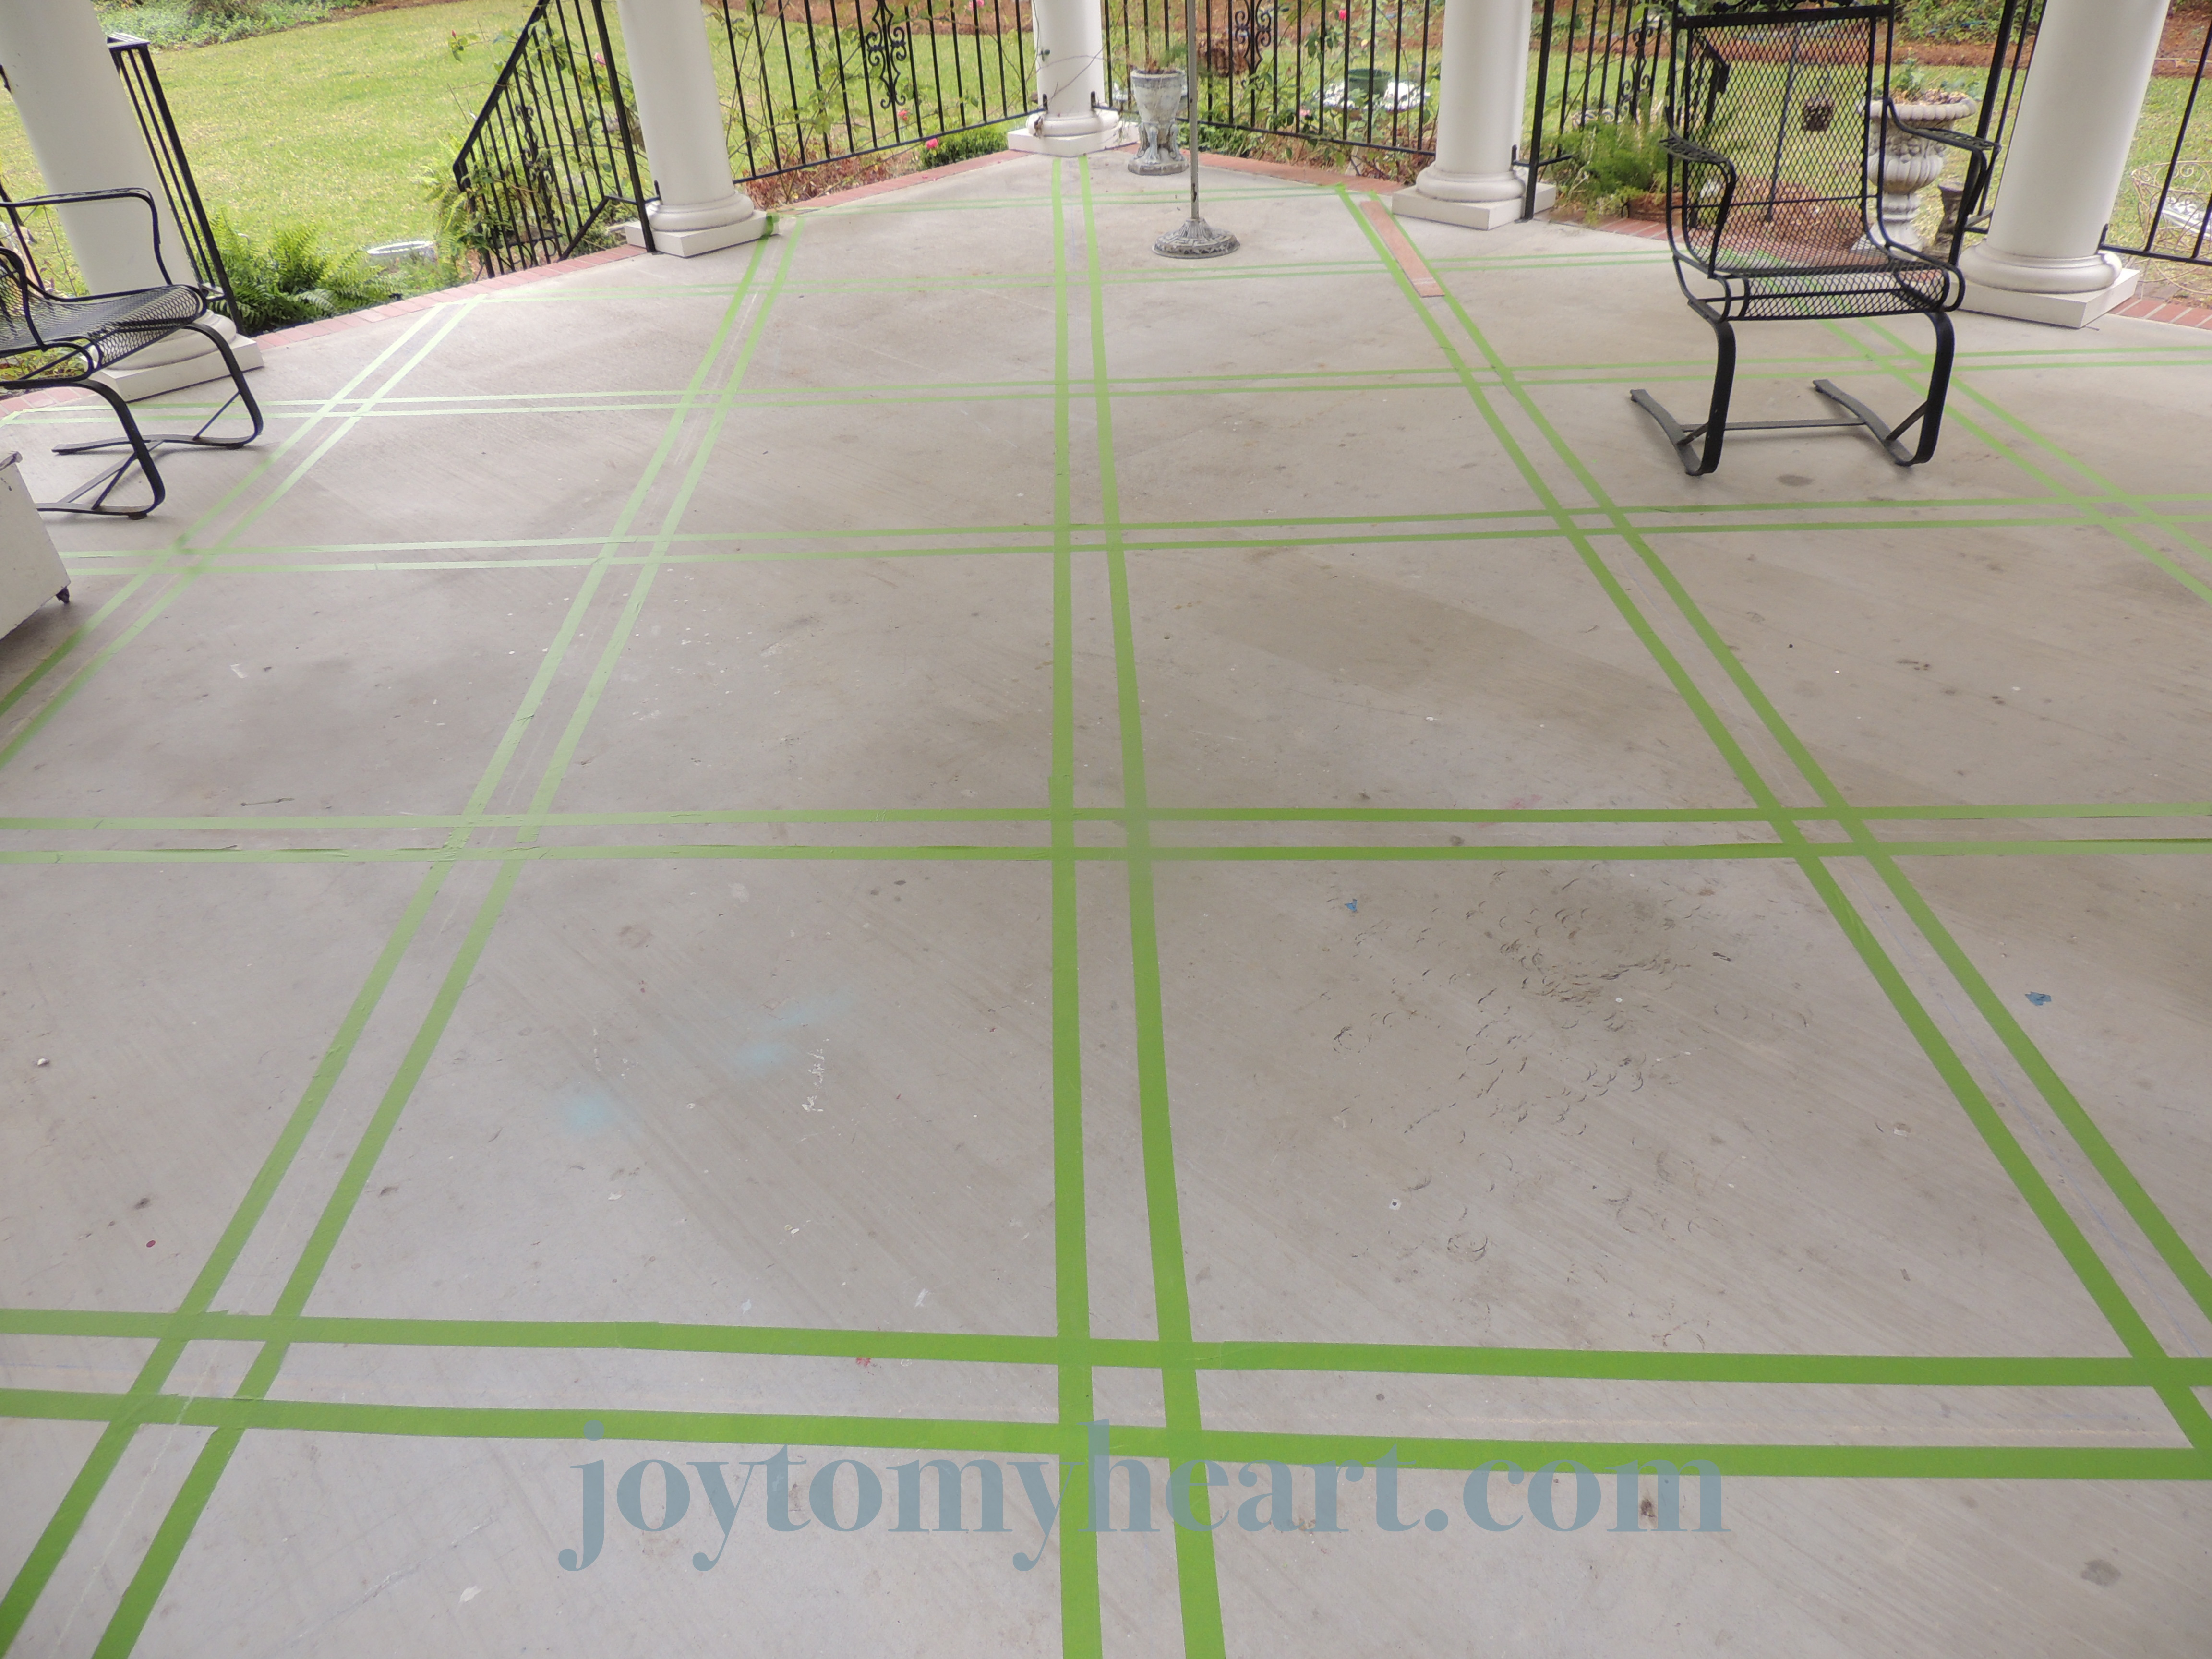 How to measure for tiles for flooring